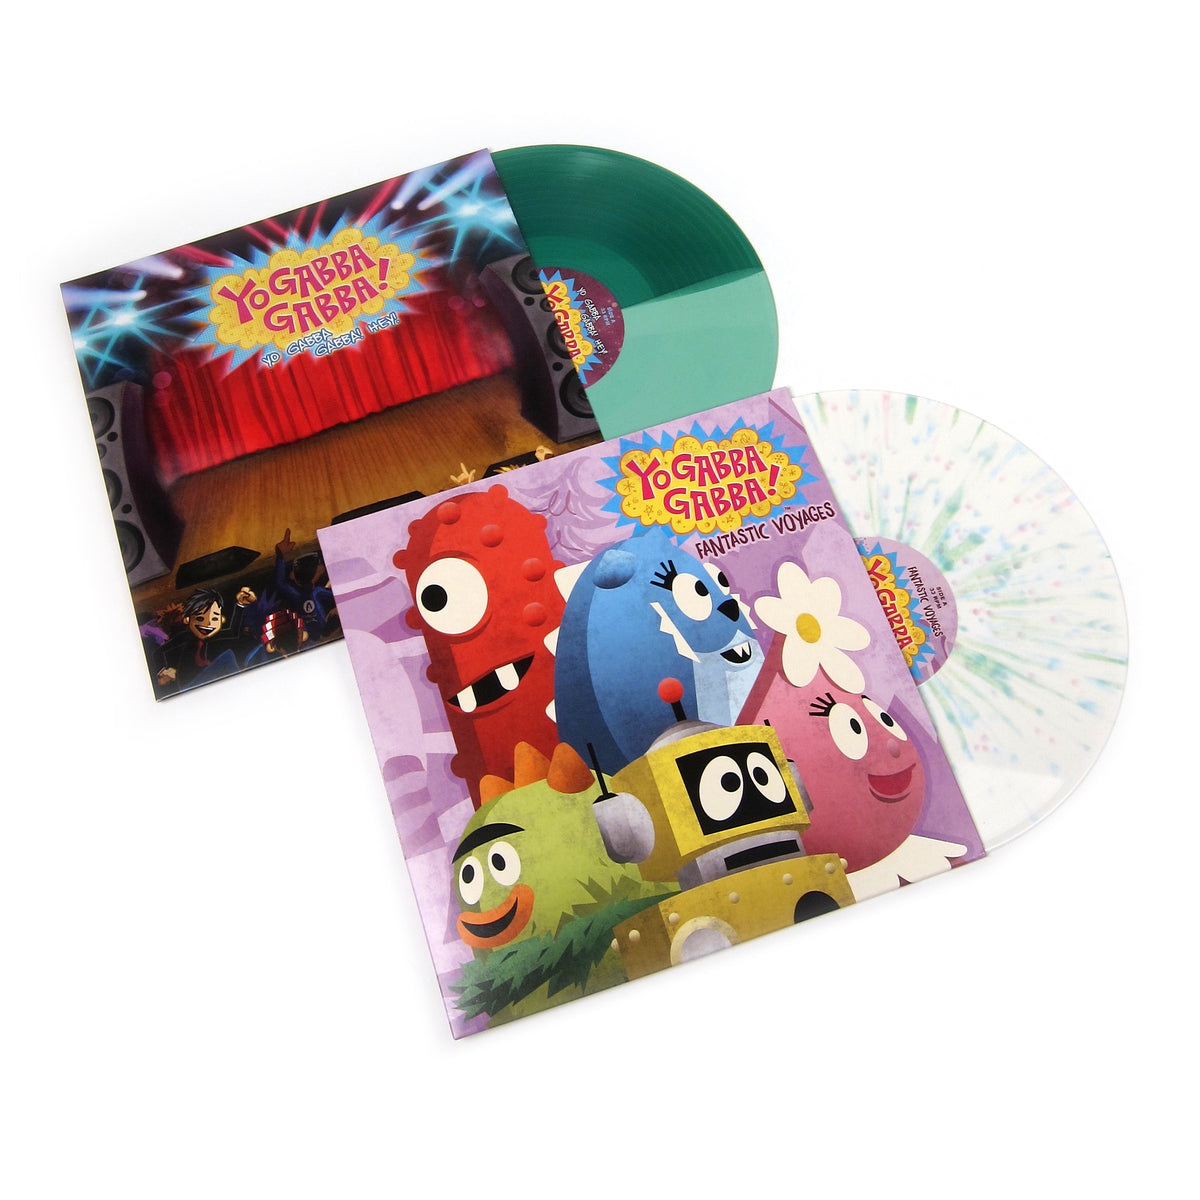 Yo Gabba Gabba: Yo Gabba Gabba Colored Vinyl LP Album Pack - TTL Exclusive